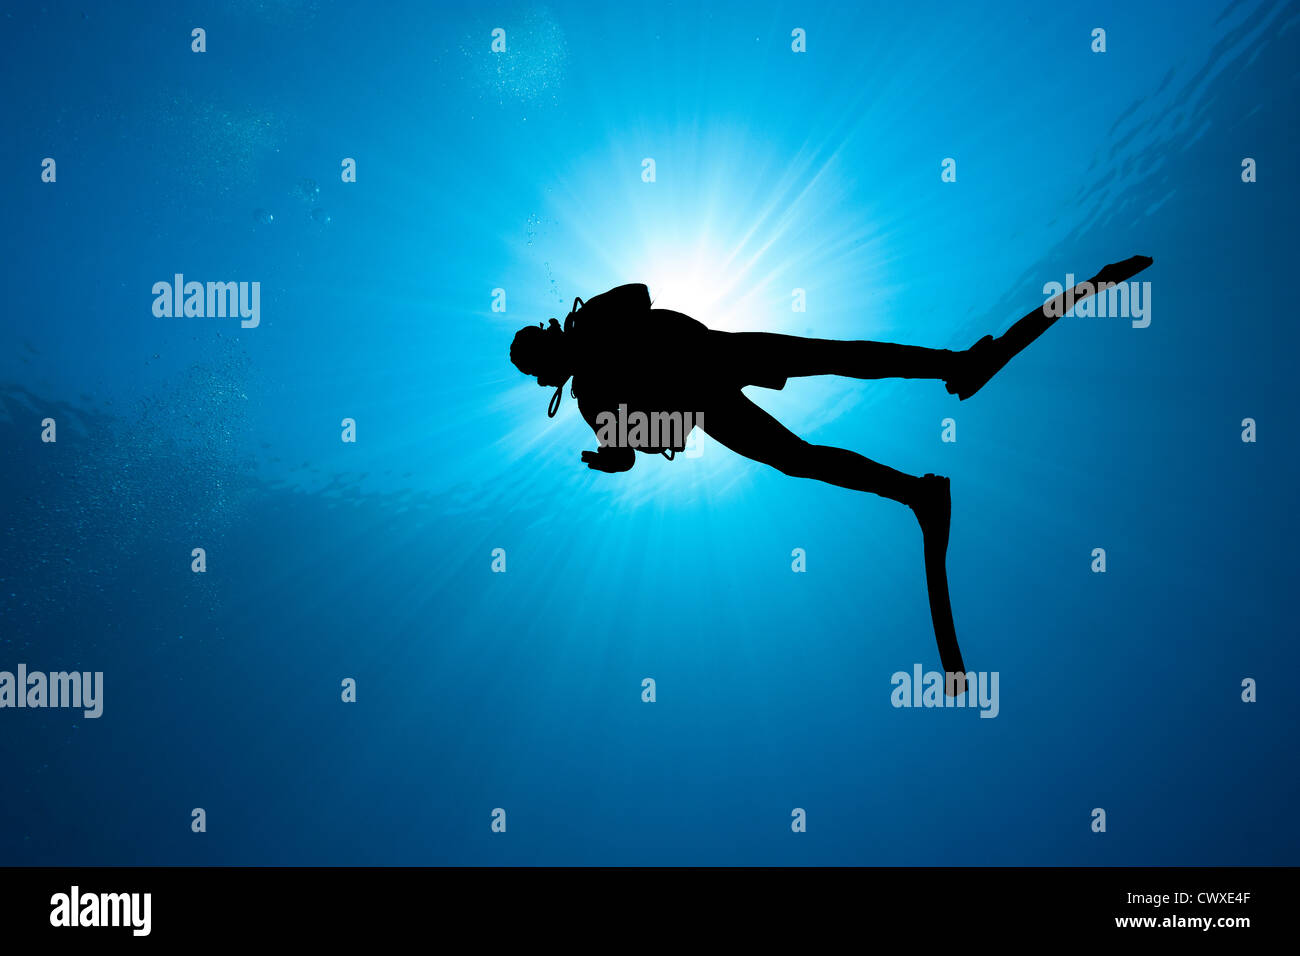 Silhouette of a SCUBA diver with a bright sunburst behind in clear blue water - Stock Image